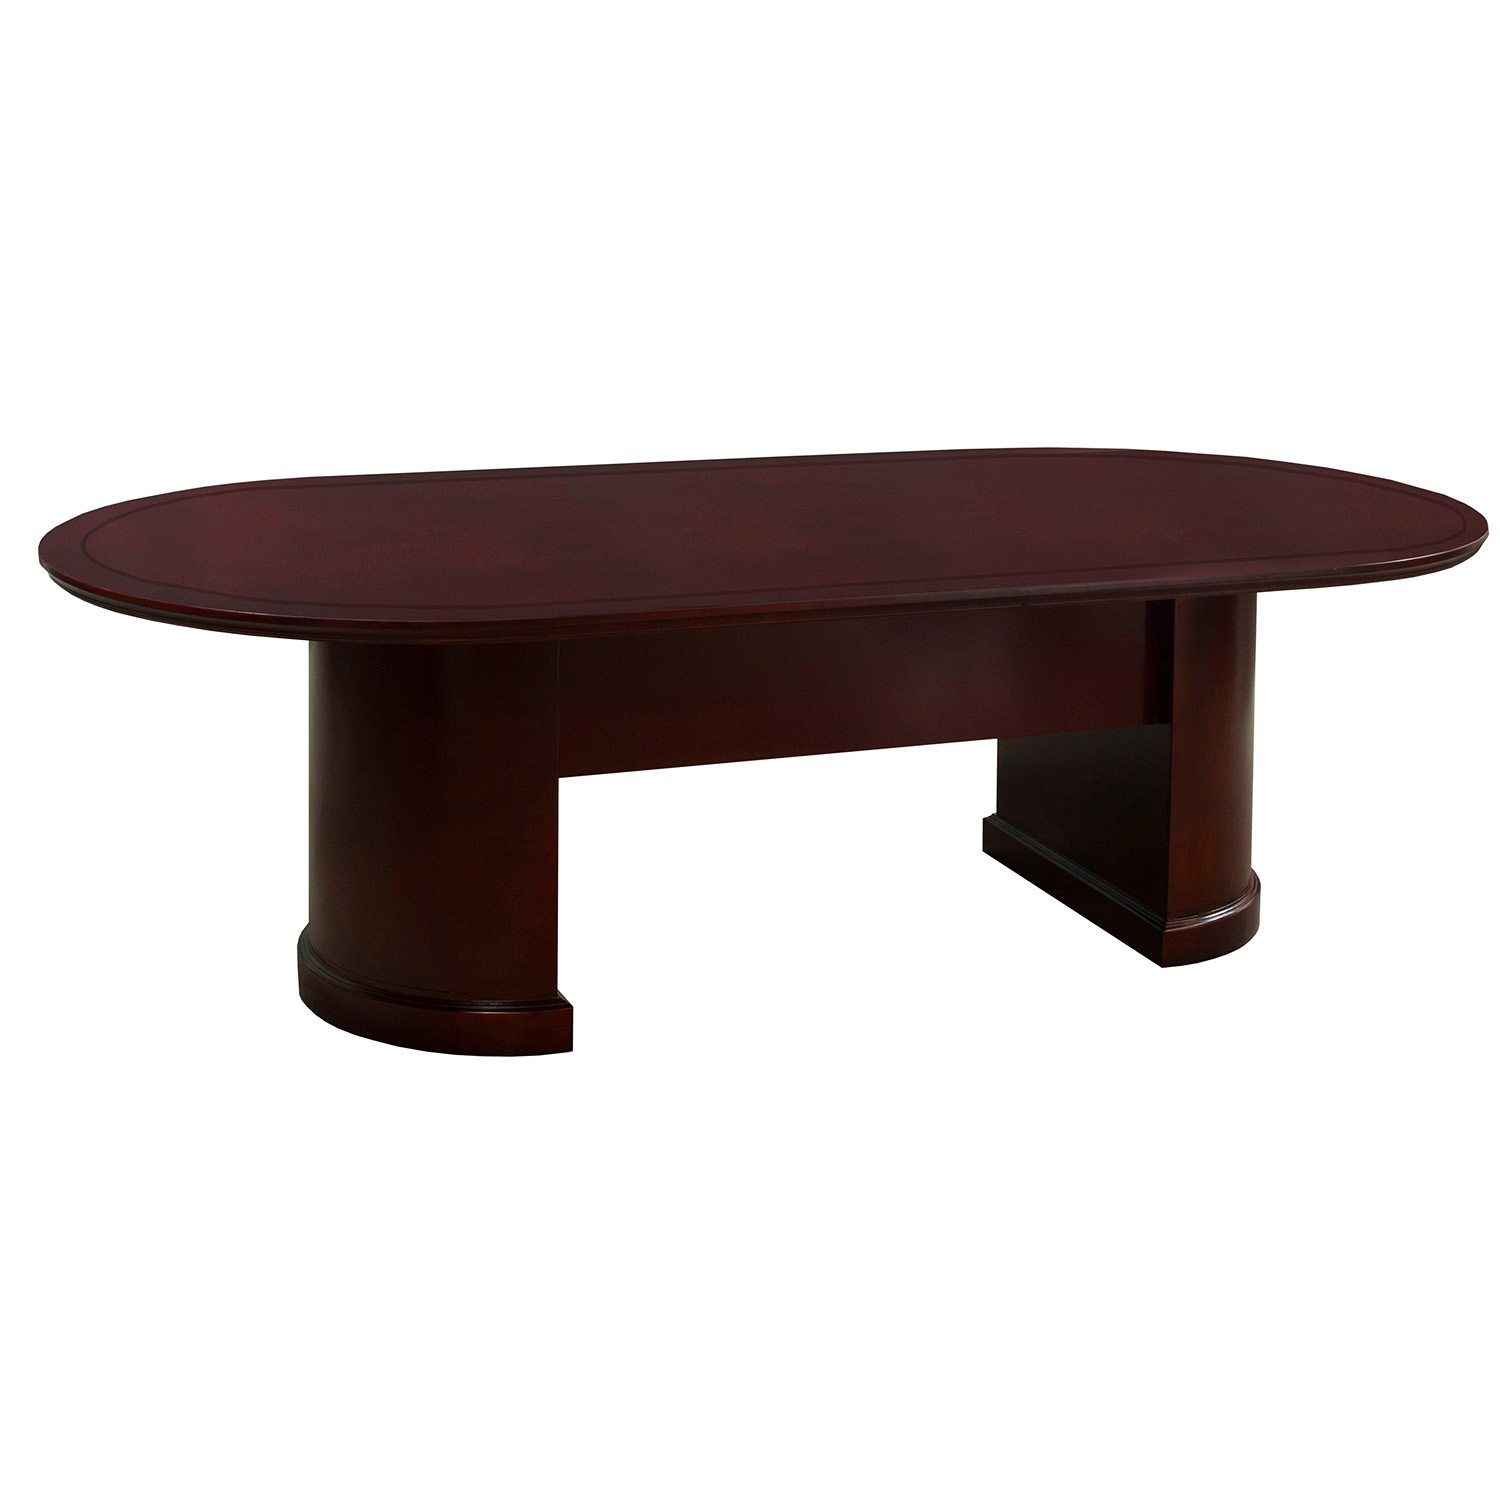 Superb Cambridge 8 Foot Conference Table Mahogany Home Interior And Landscaping Transignezvosmurscom